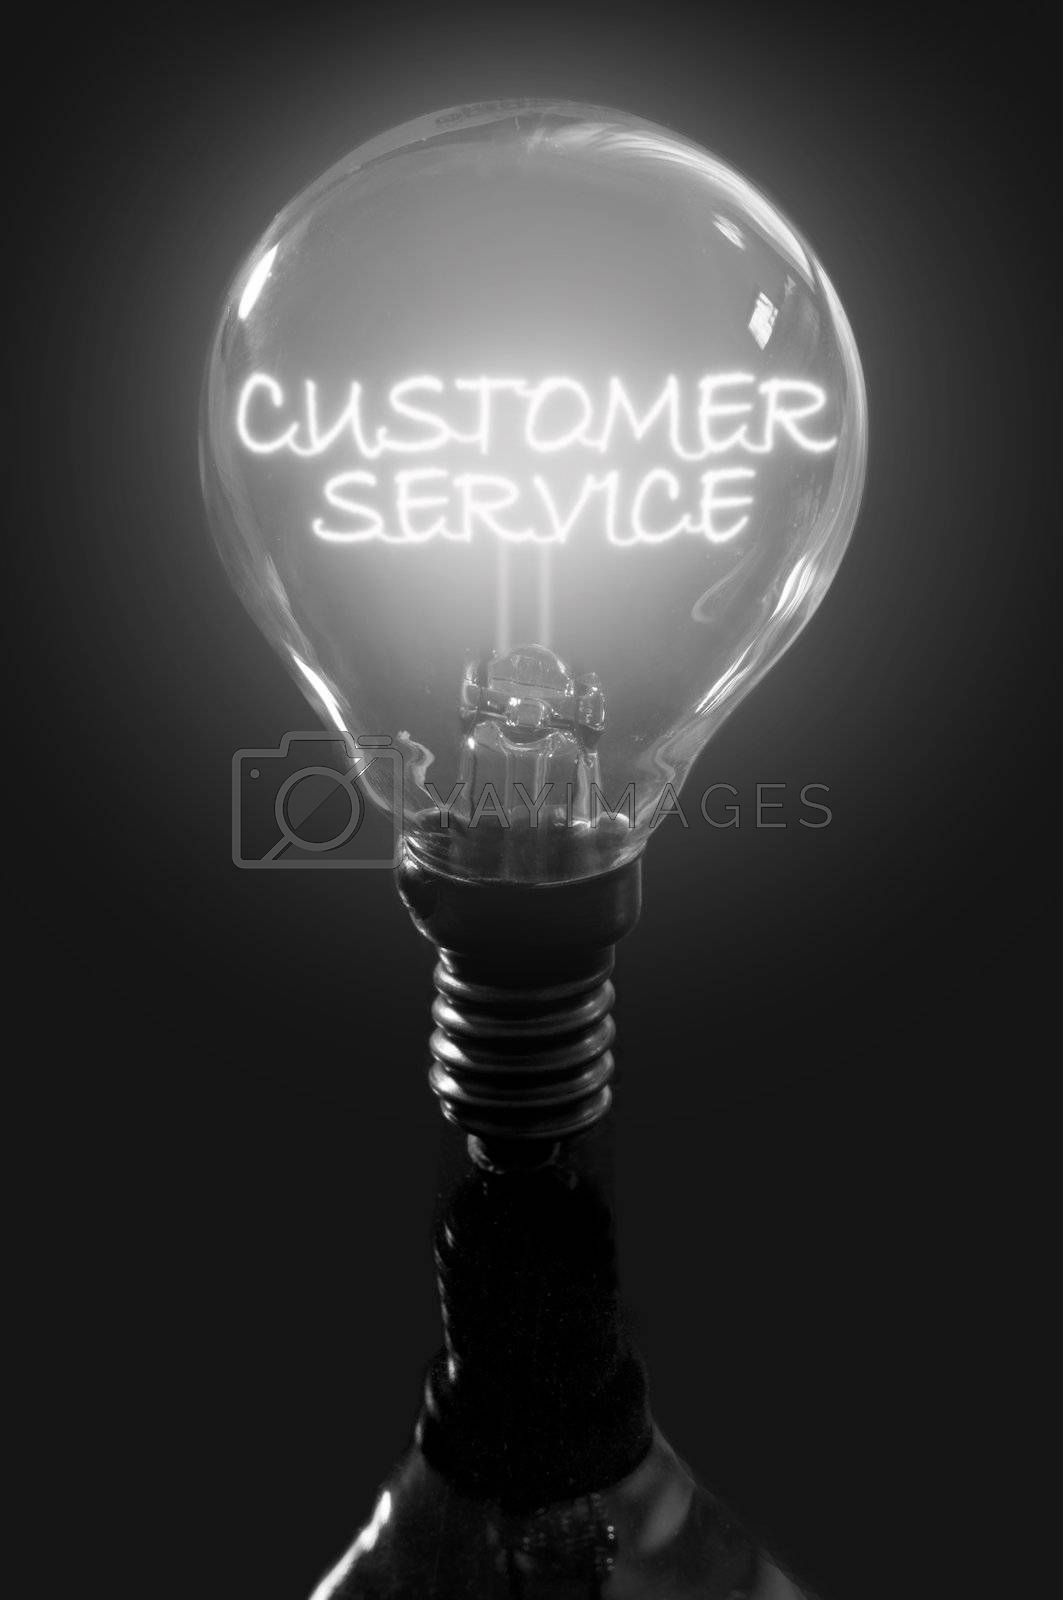 Royalty free image of Customer service by unikpix